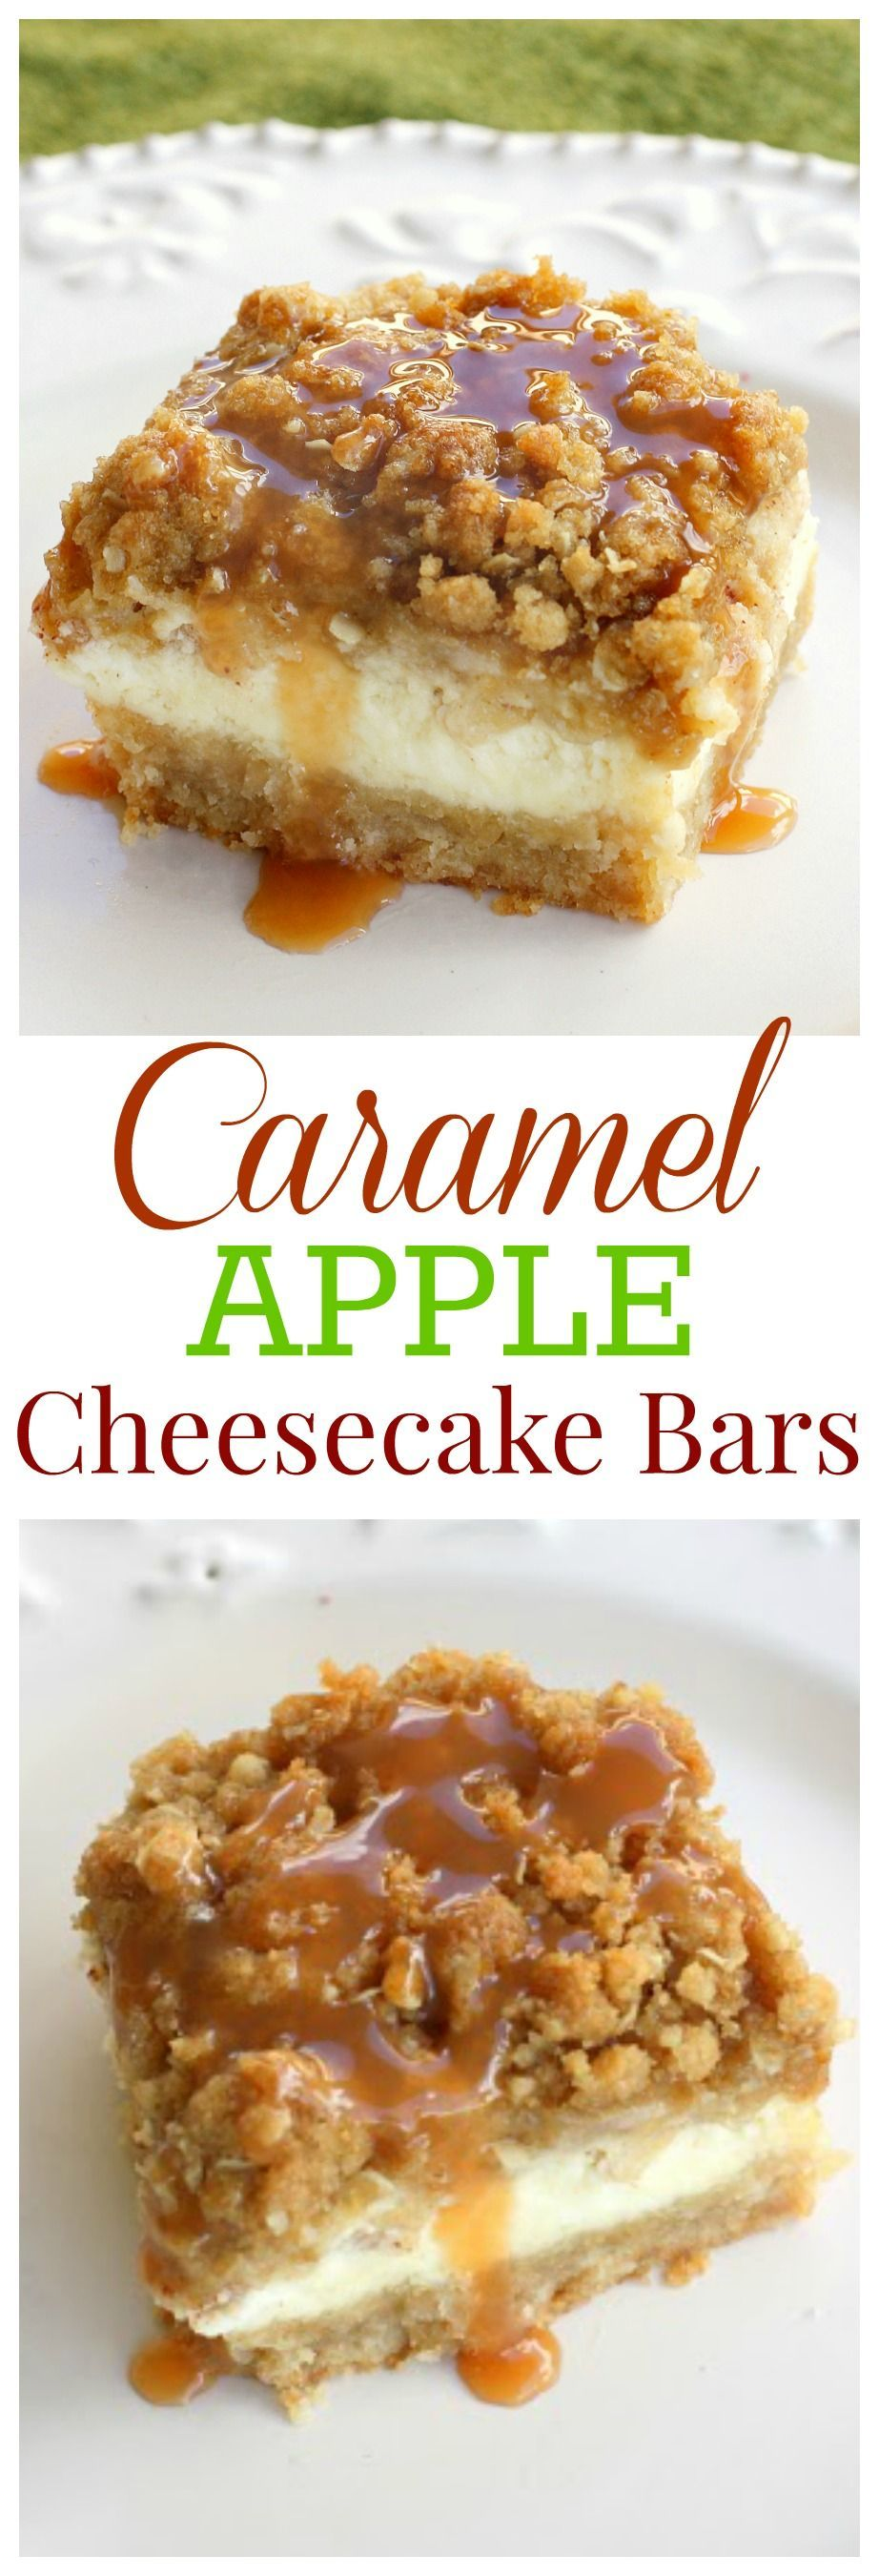 Apple Cheesecake Bars Caramel Apple Cheesecake Bars - These bars start with a shortbread crust, a thick cheesecake layer, and are topped with diced cinnamon apples and a sweet streusel topping. One of my favorite treats ever! the-girl-who-ate-Caramel Apple Cheesecake Bars - These bars start with a shortbread crust, a thick cheesecak...